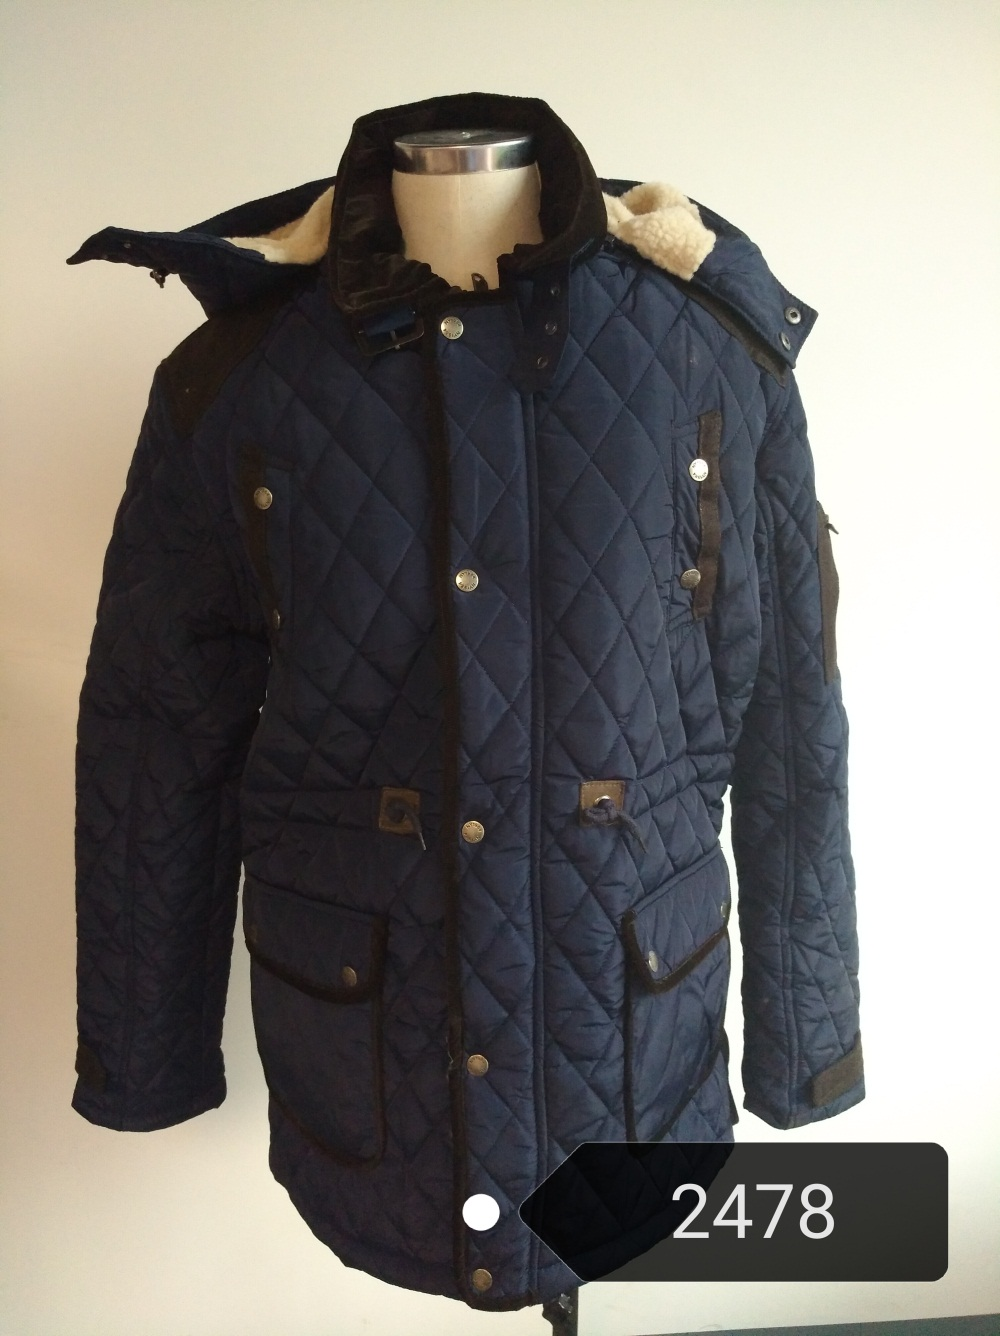 Men jacket,fashion jacket,latest winter jacket for men 2478